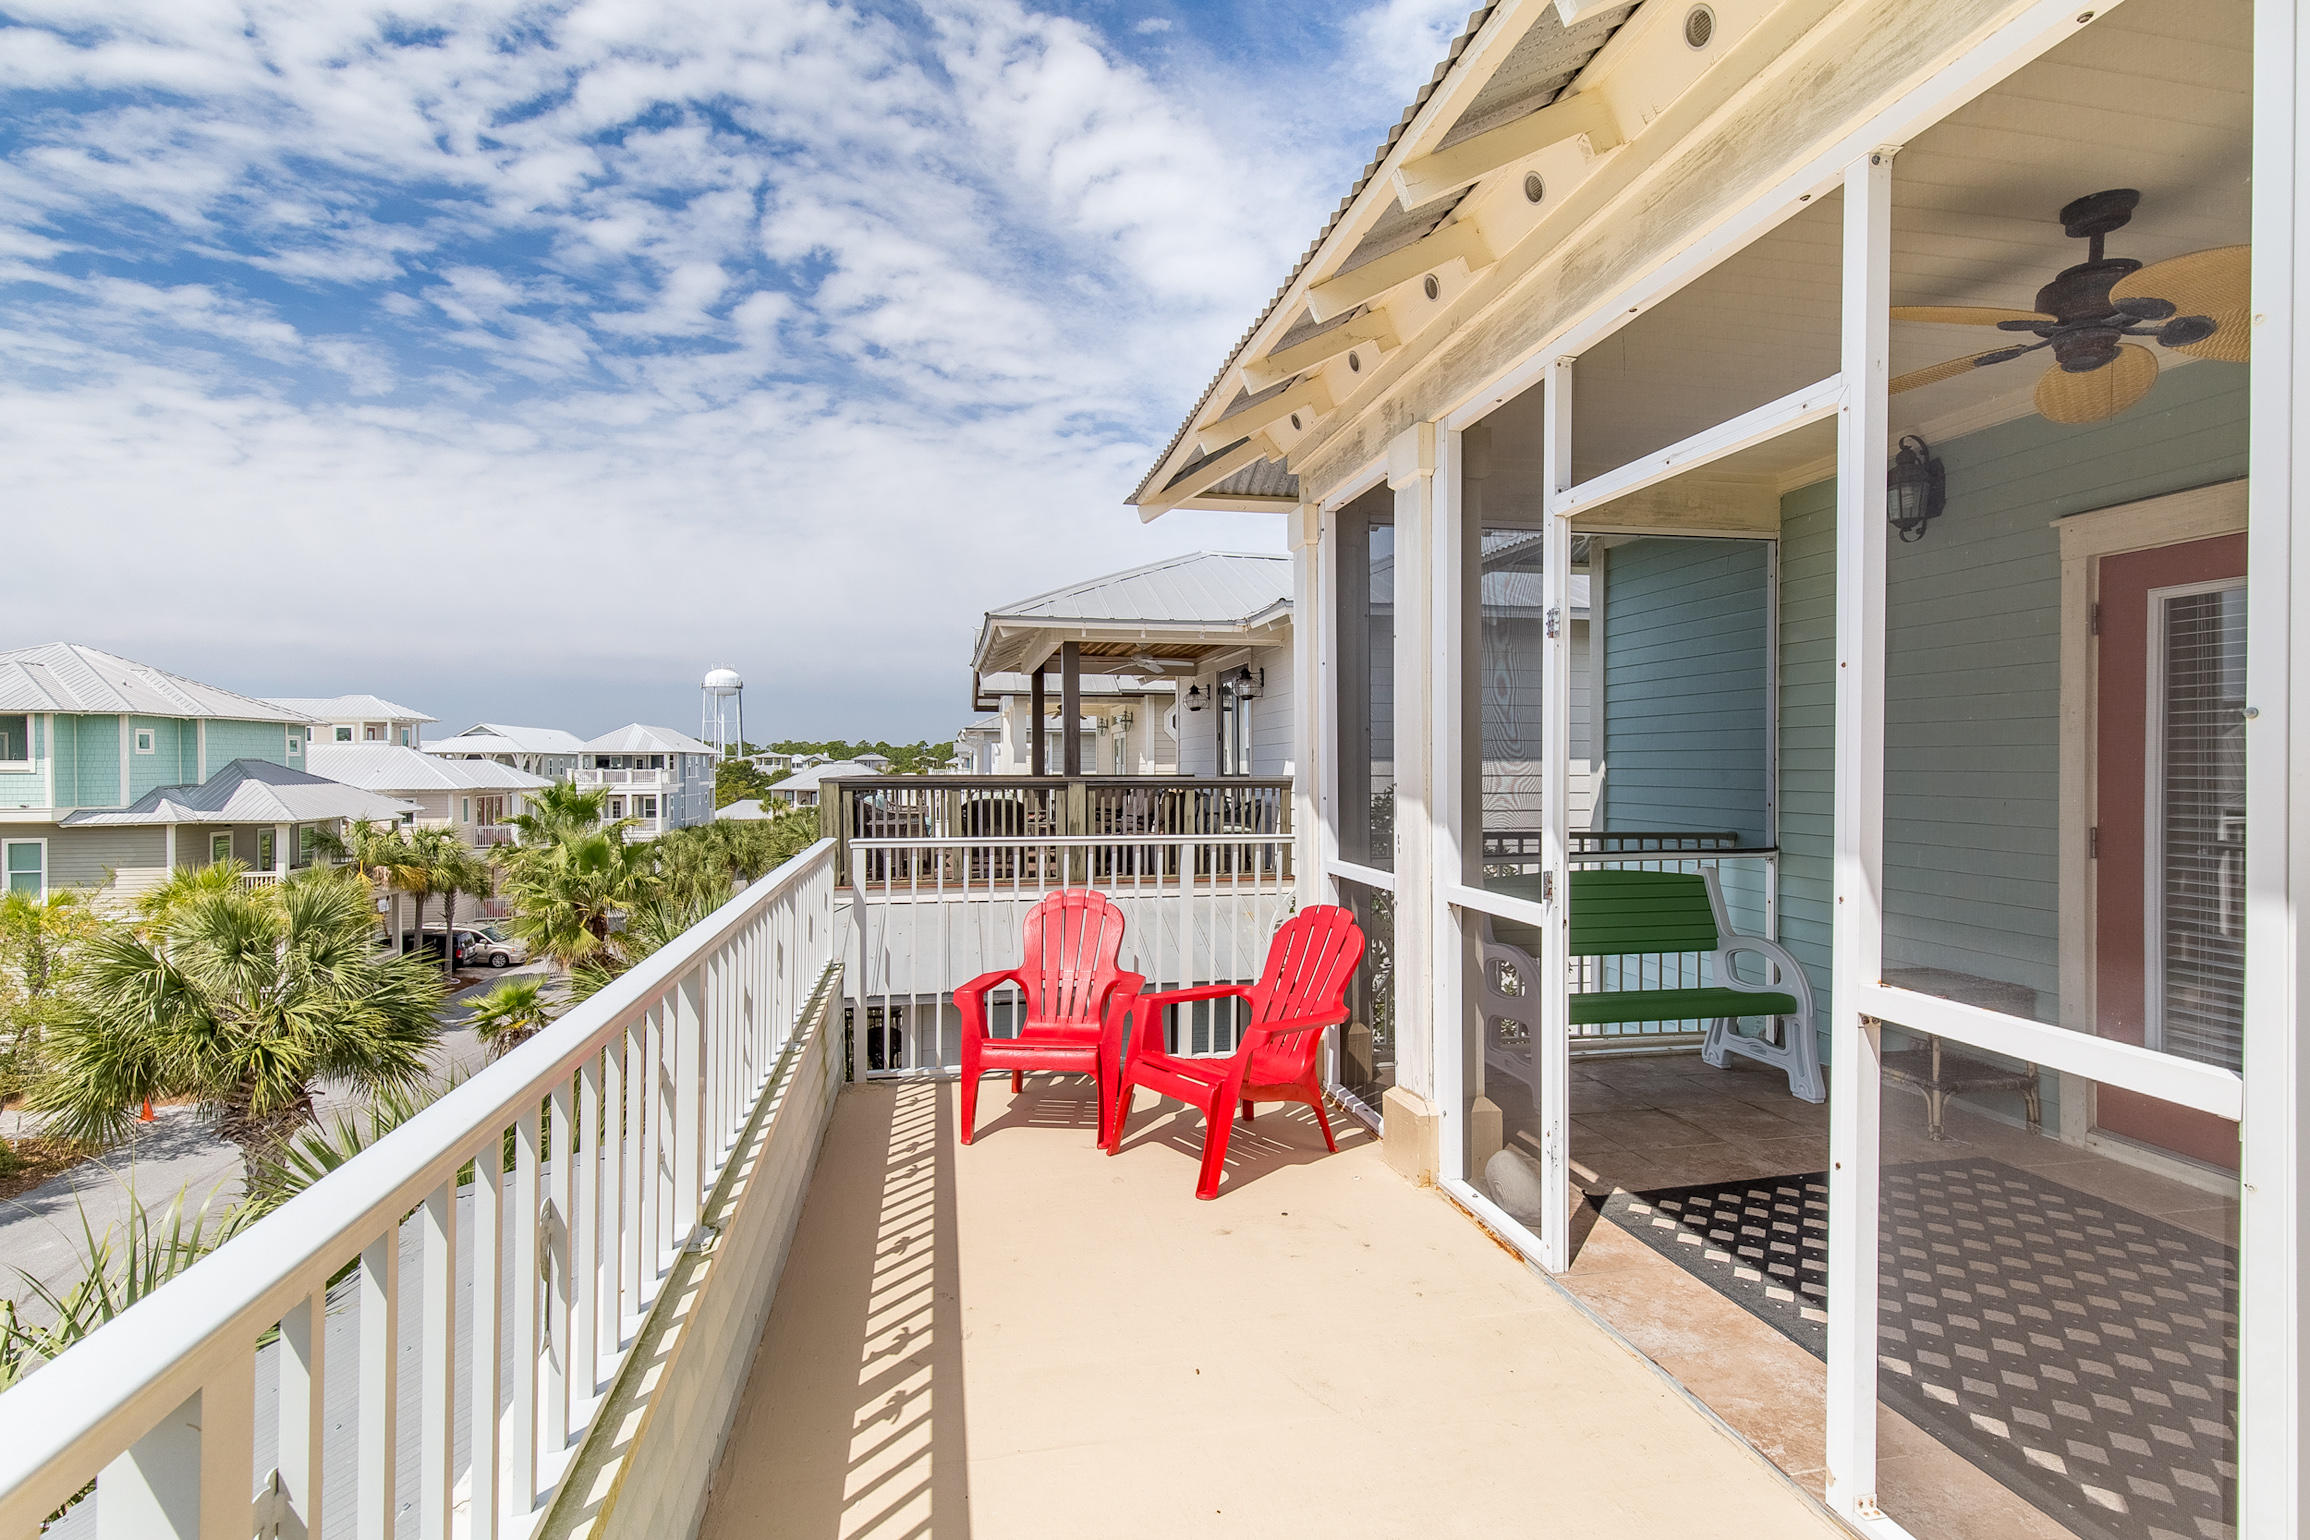 This spacious and stunning 3 story home  features both modern amenities and architectural character